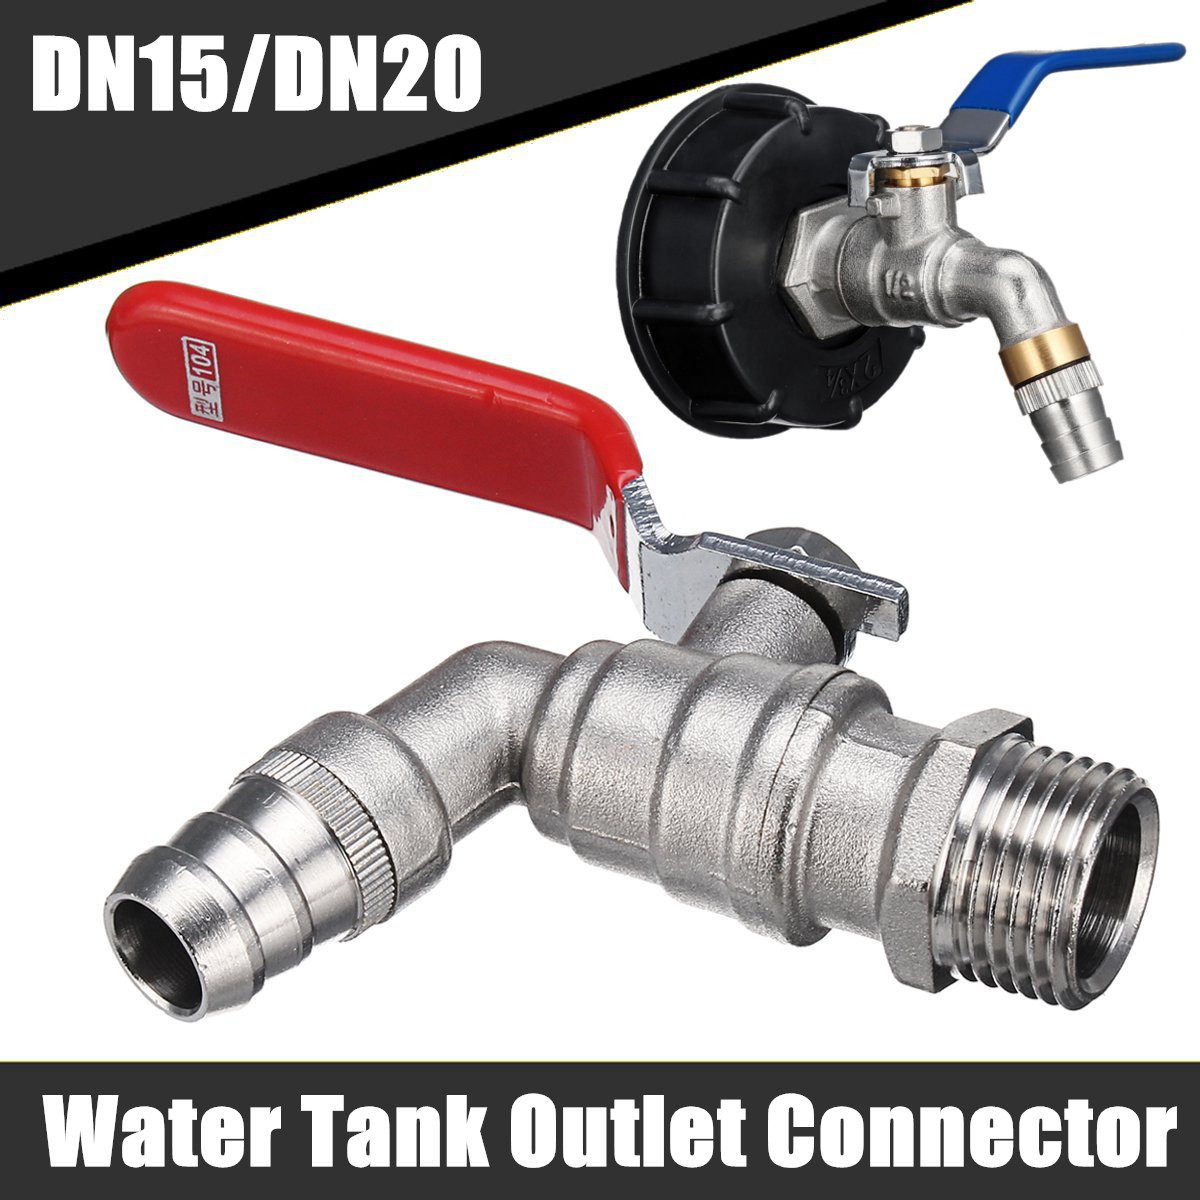 DN15//DN20 S60X6 Water Tank Outlet Connector Thread Mounting IBC Tank Tap Adapter